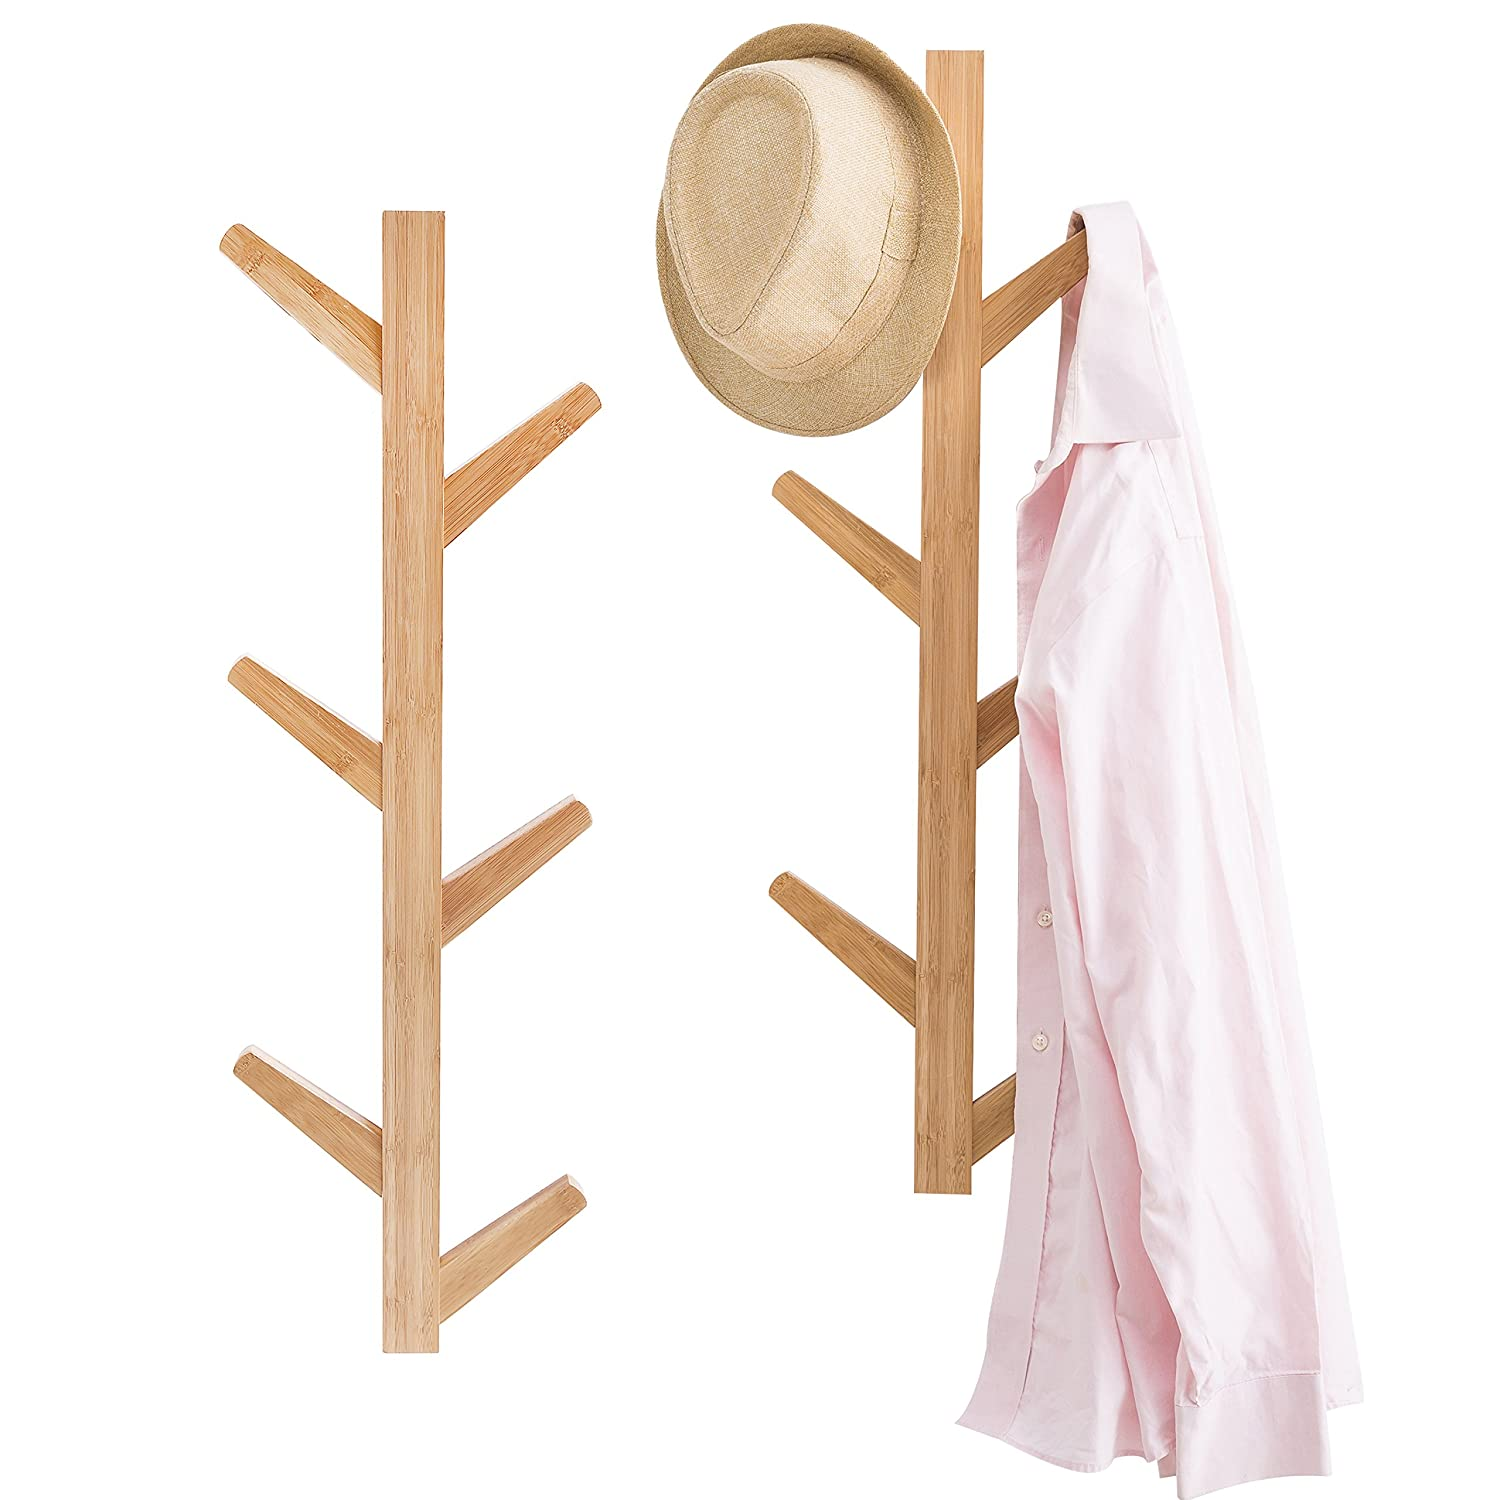 Amazoncom 6 Hook Wall Mounted Natural Bamboo Wood Tree Branch Design